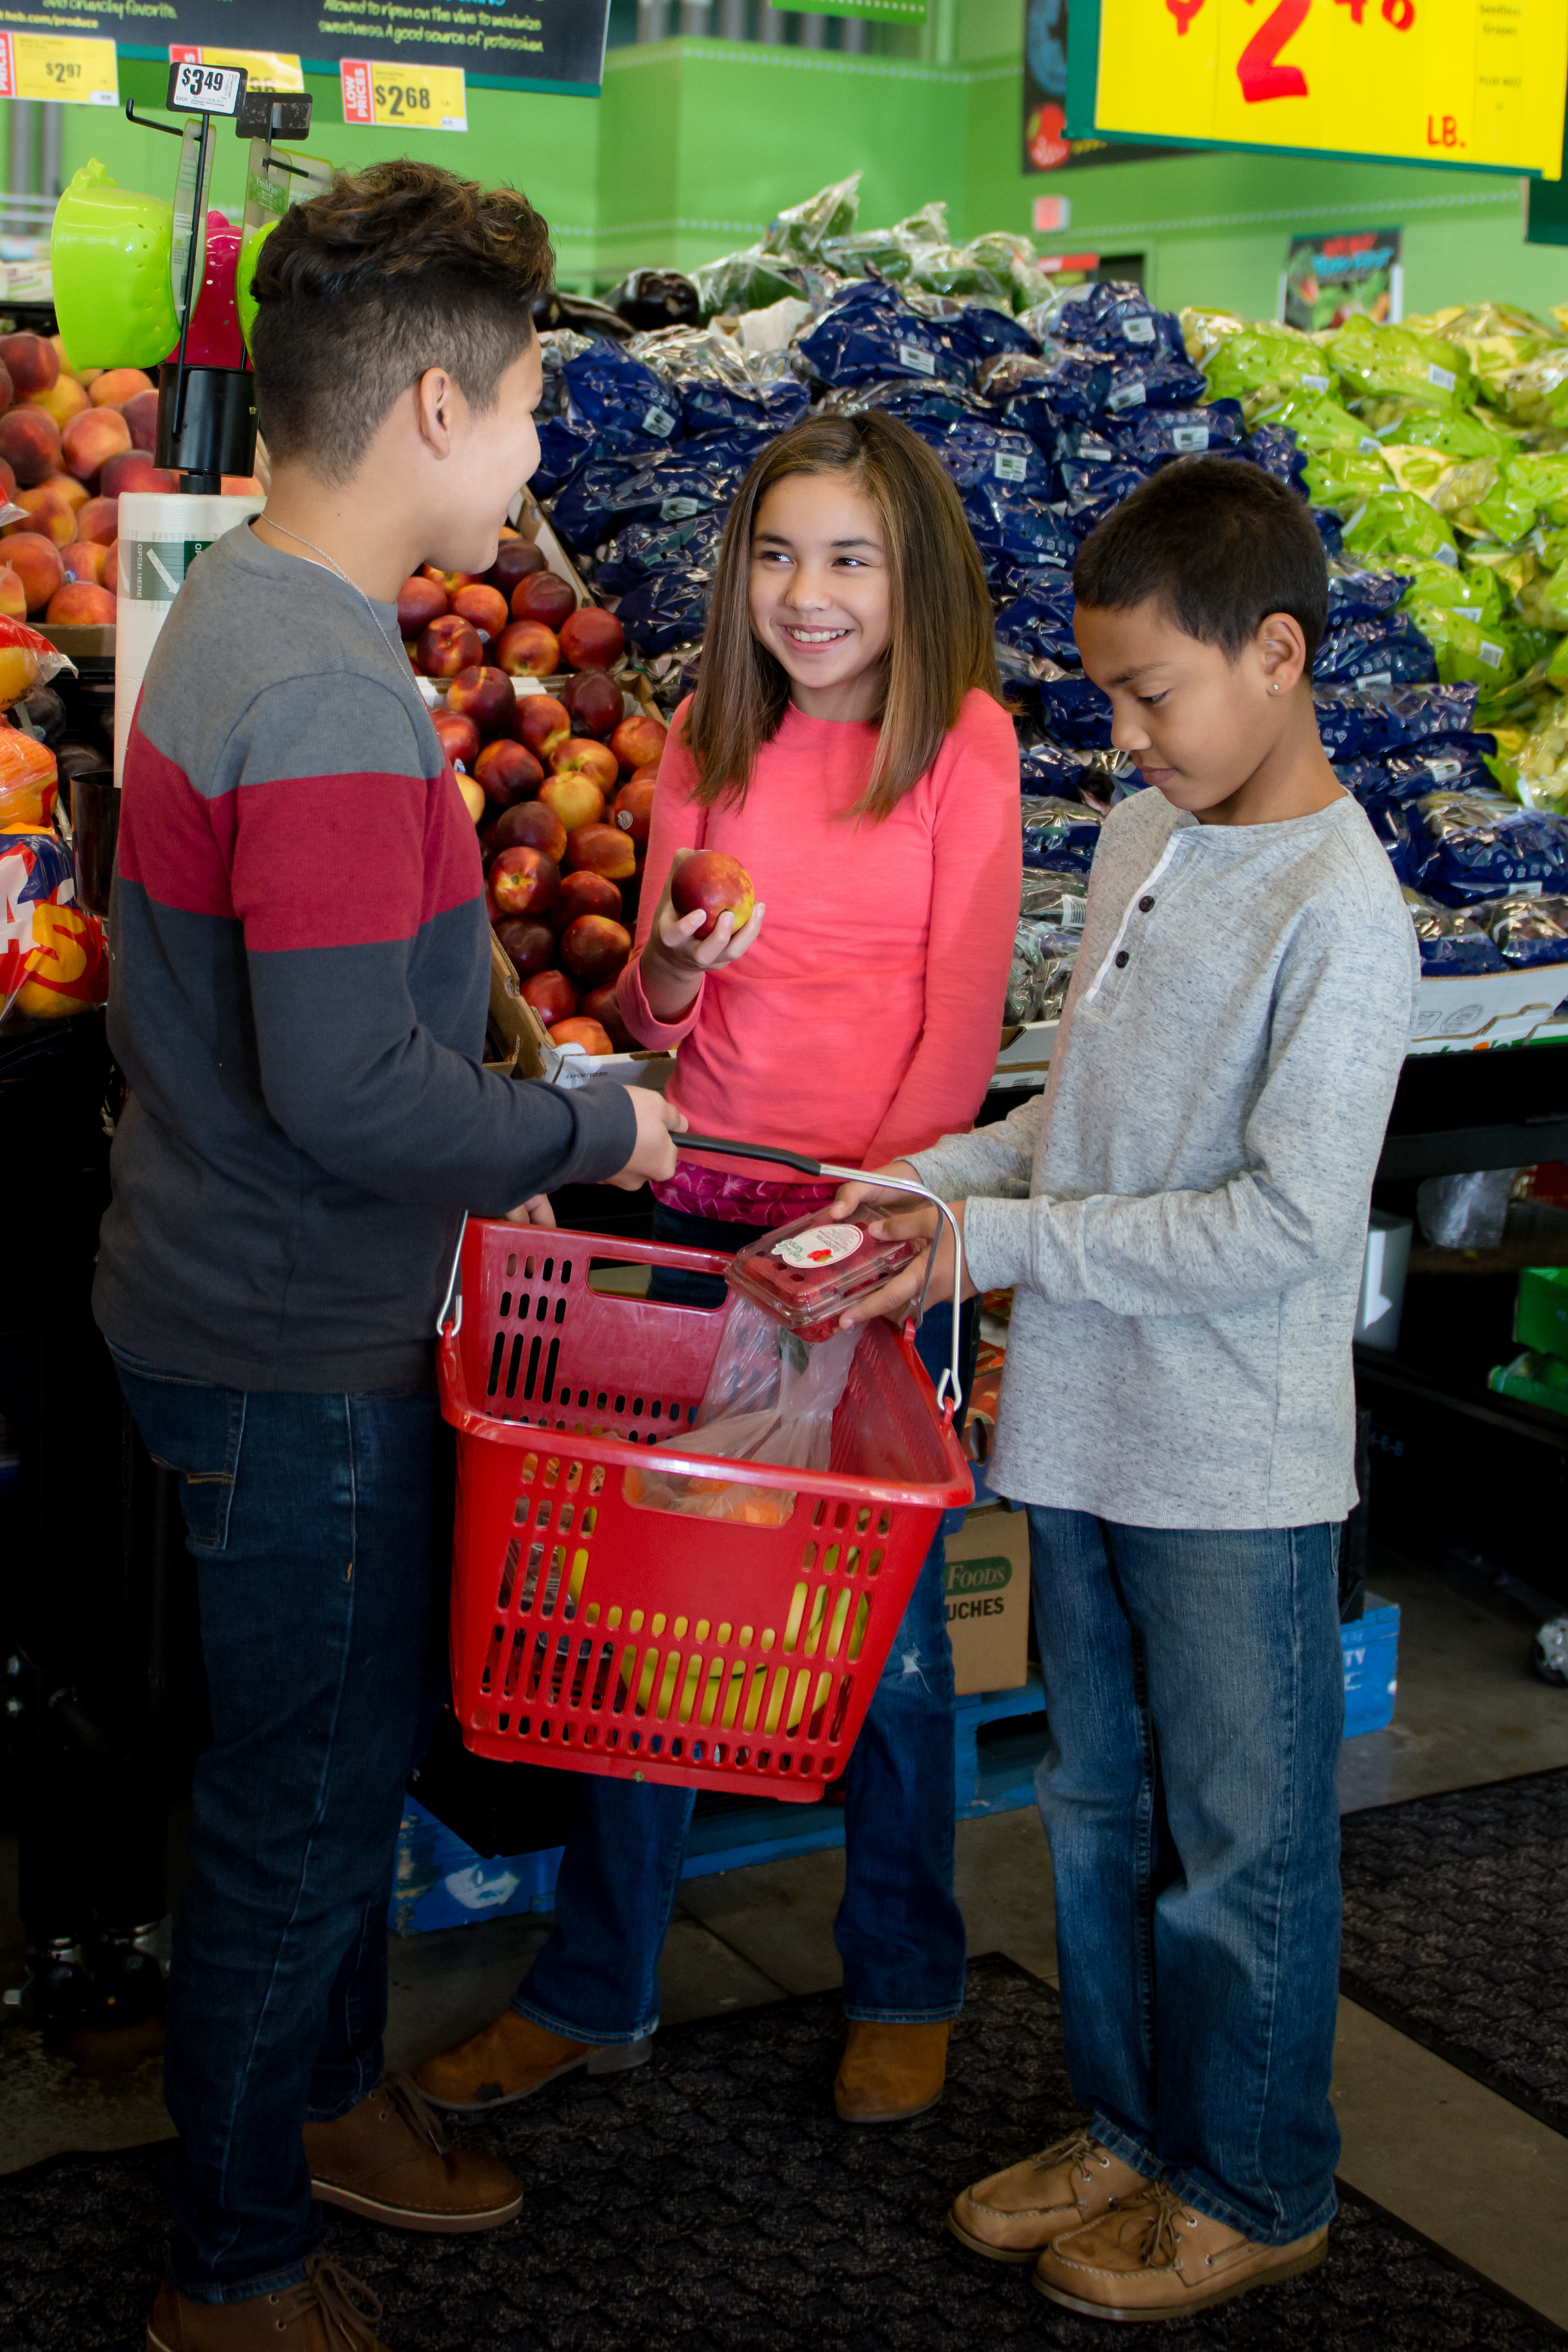 Children shopping at a grocery store